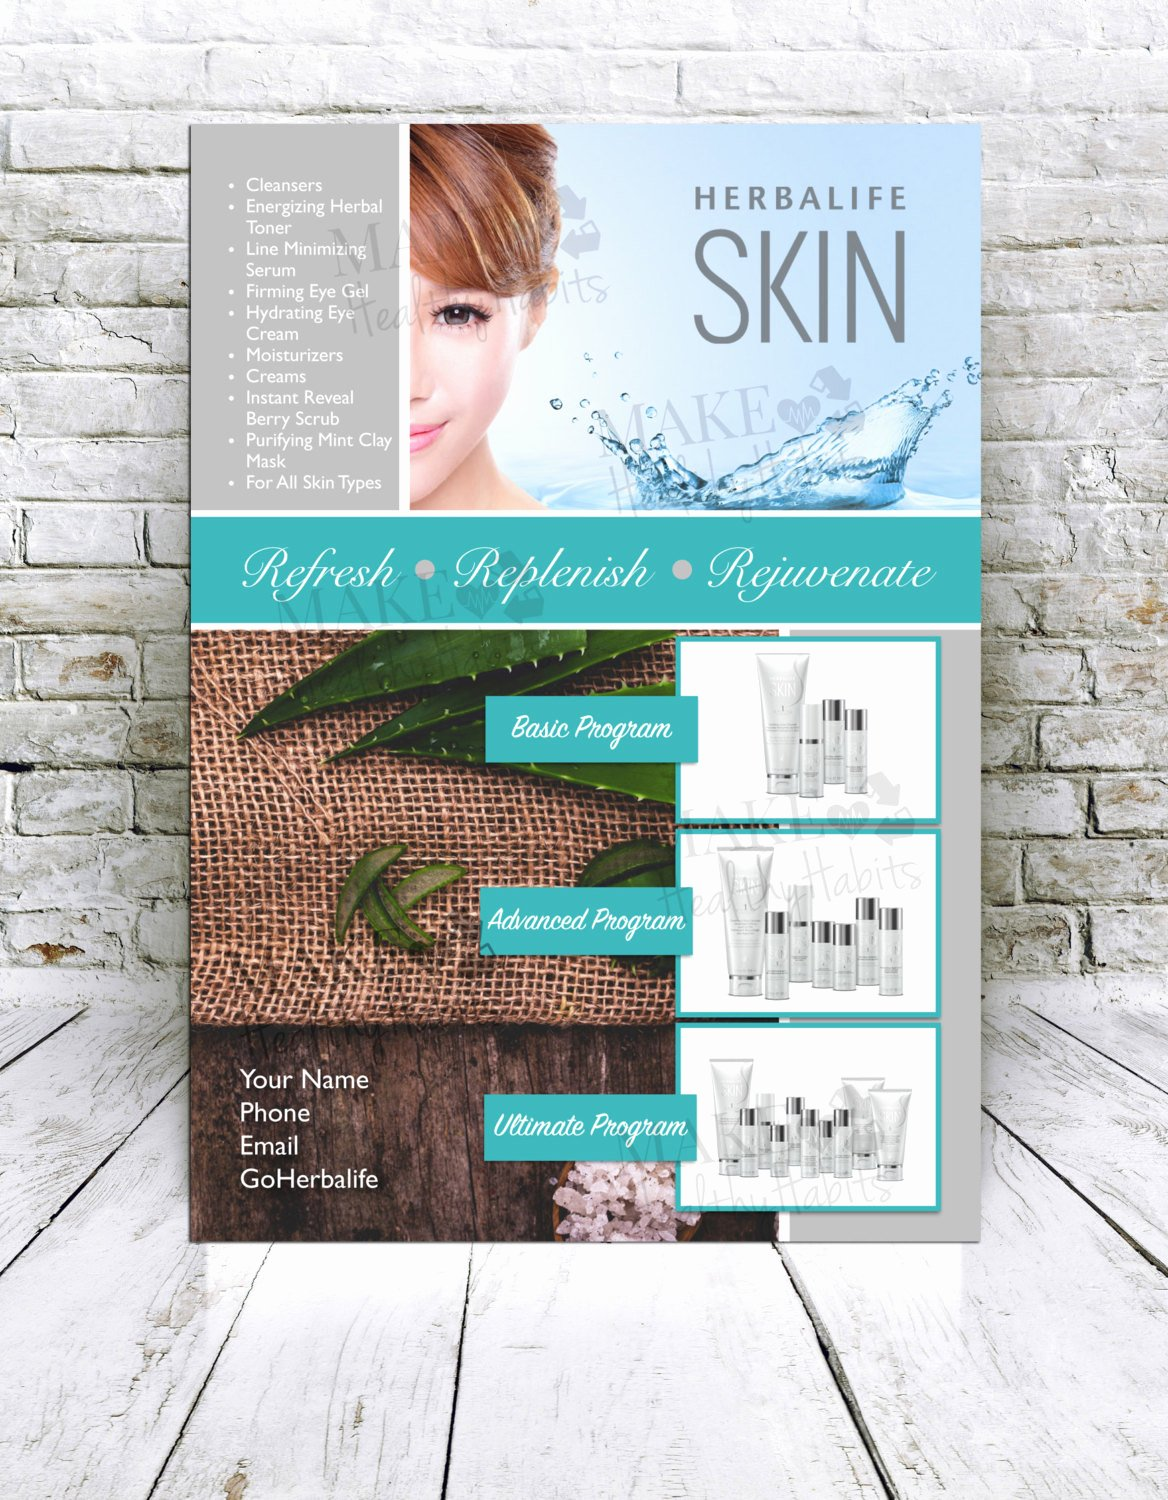 Herbalife Flyer Templates Fresh Custom Print Ready Herbalife Skin Flyer by